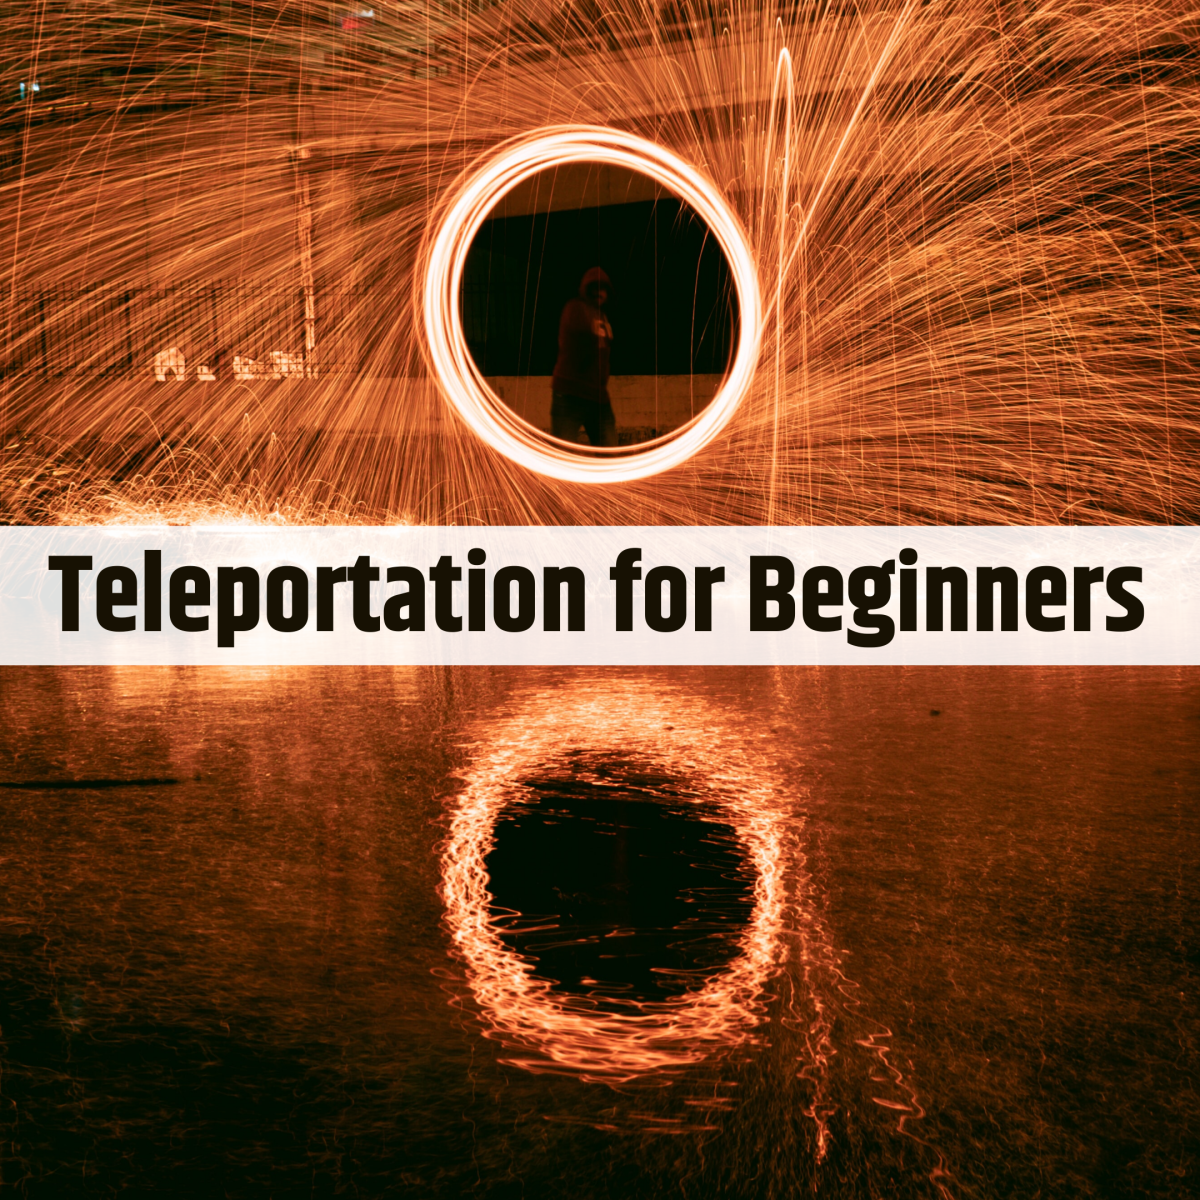 Is teleportation possible? Explore some speculation and theories.